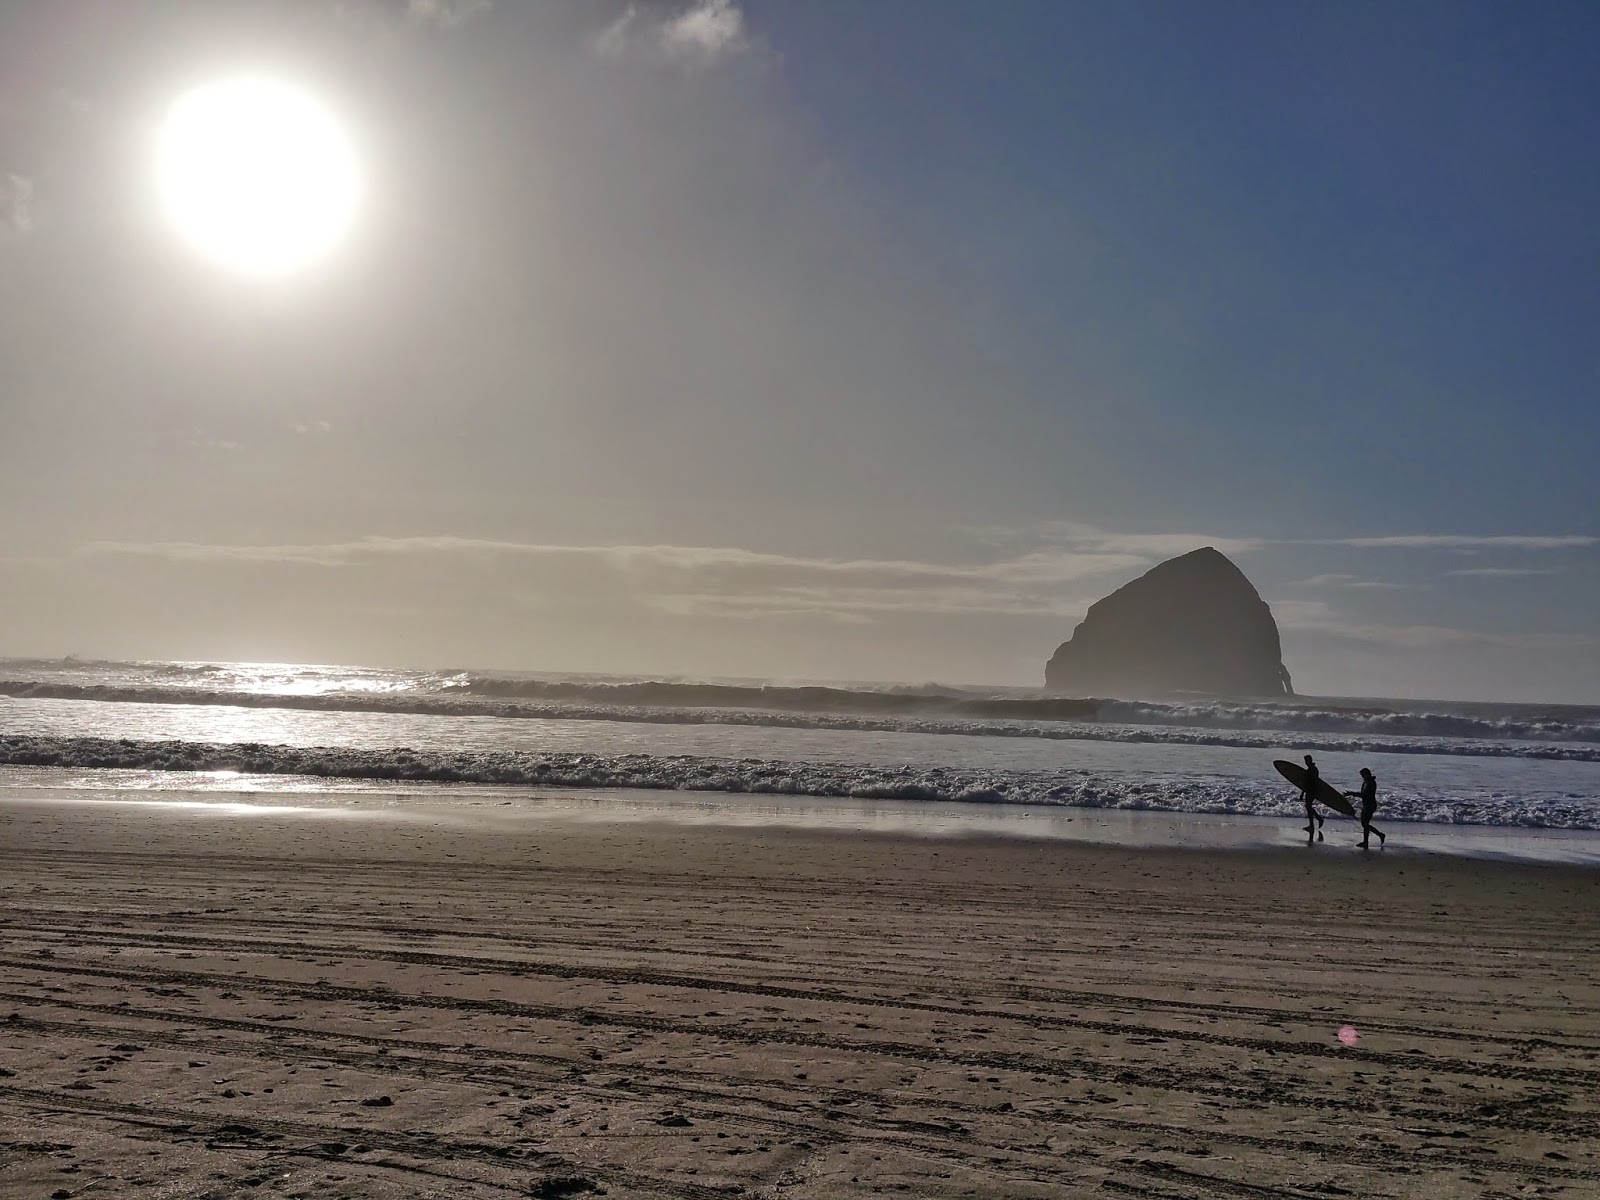 Surfers at Pacific City, Oregon